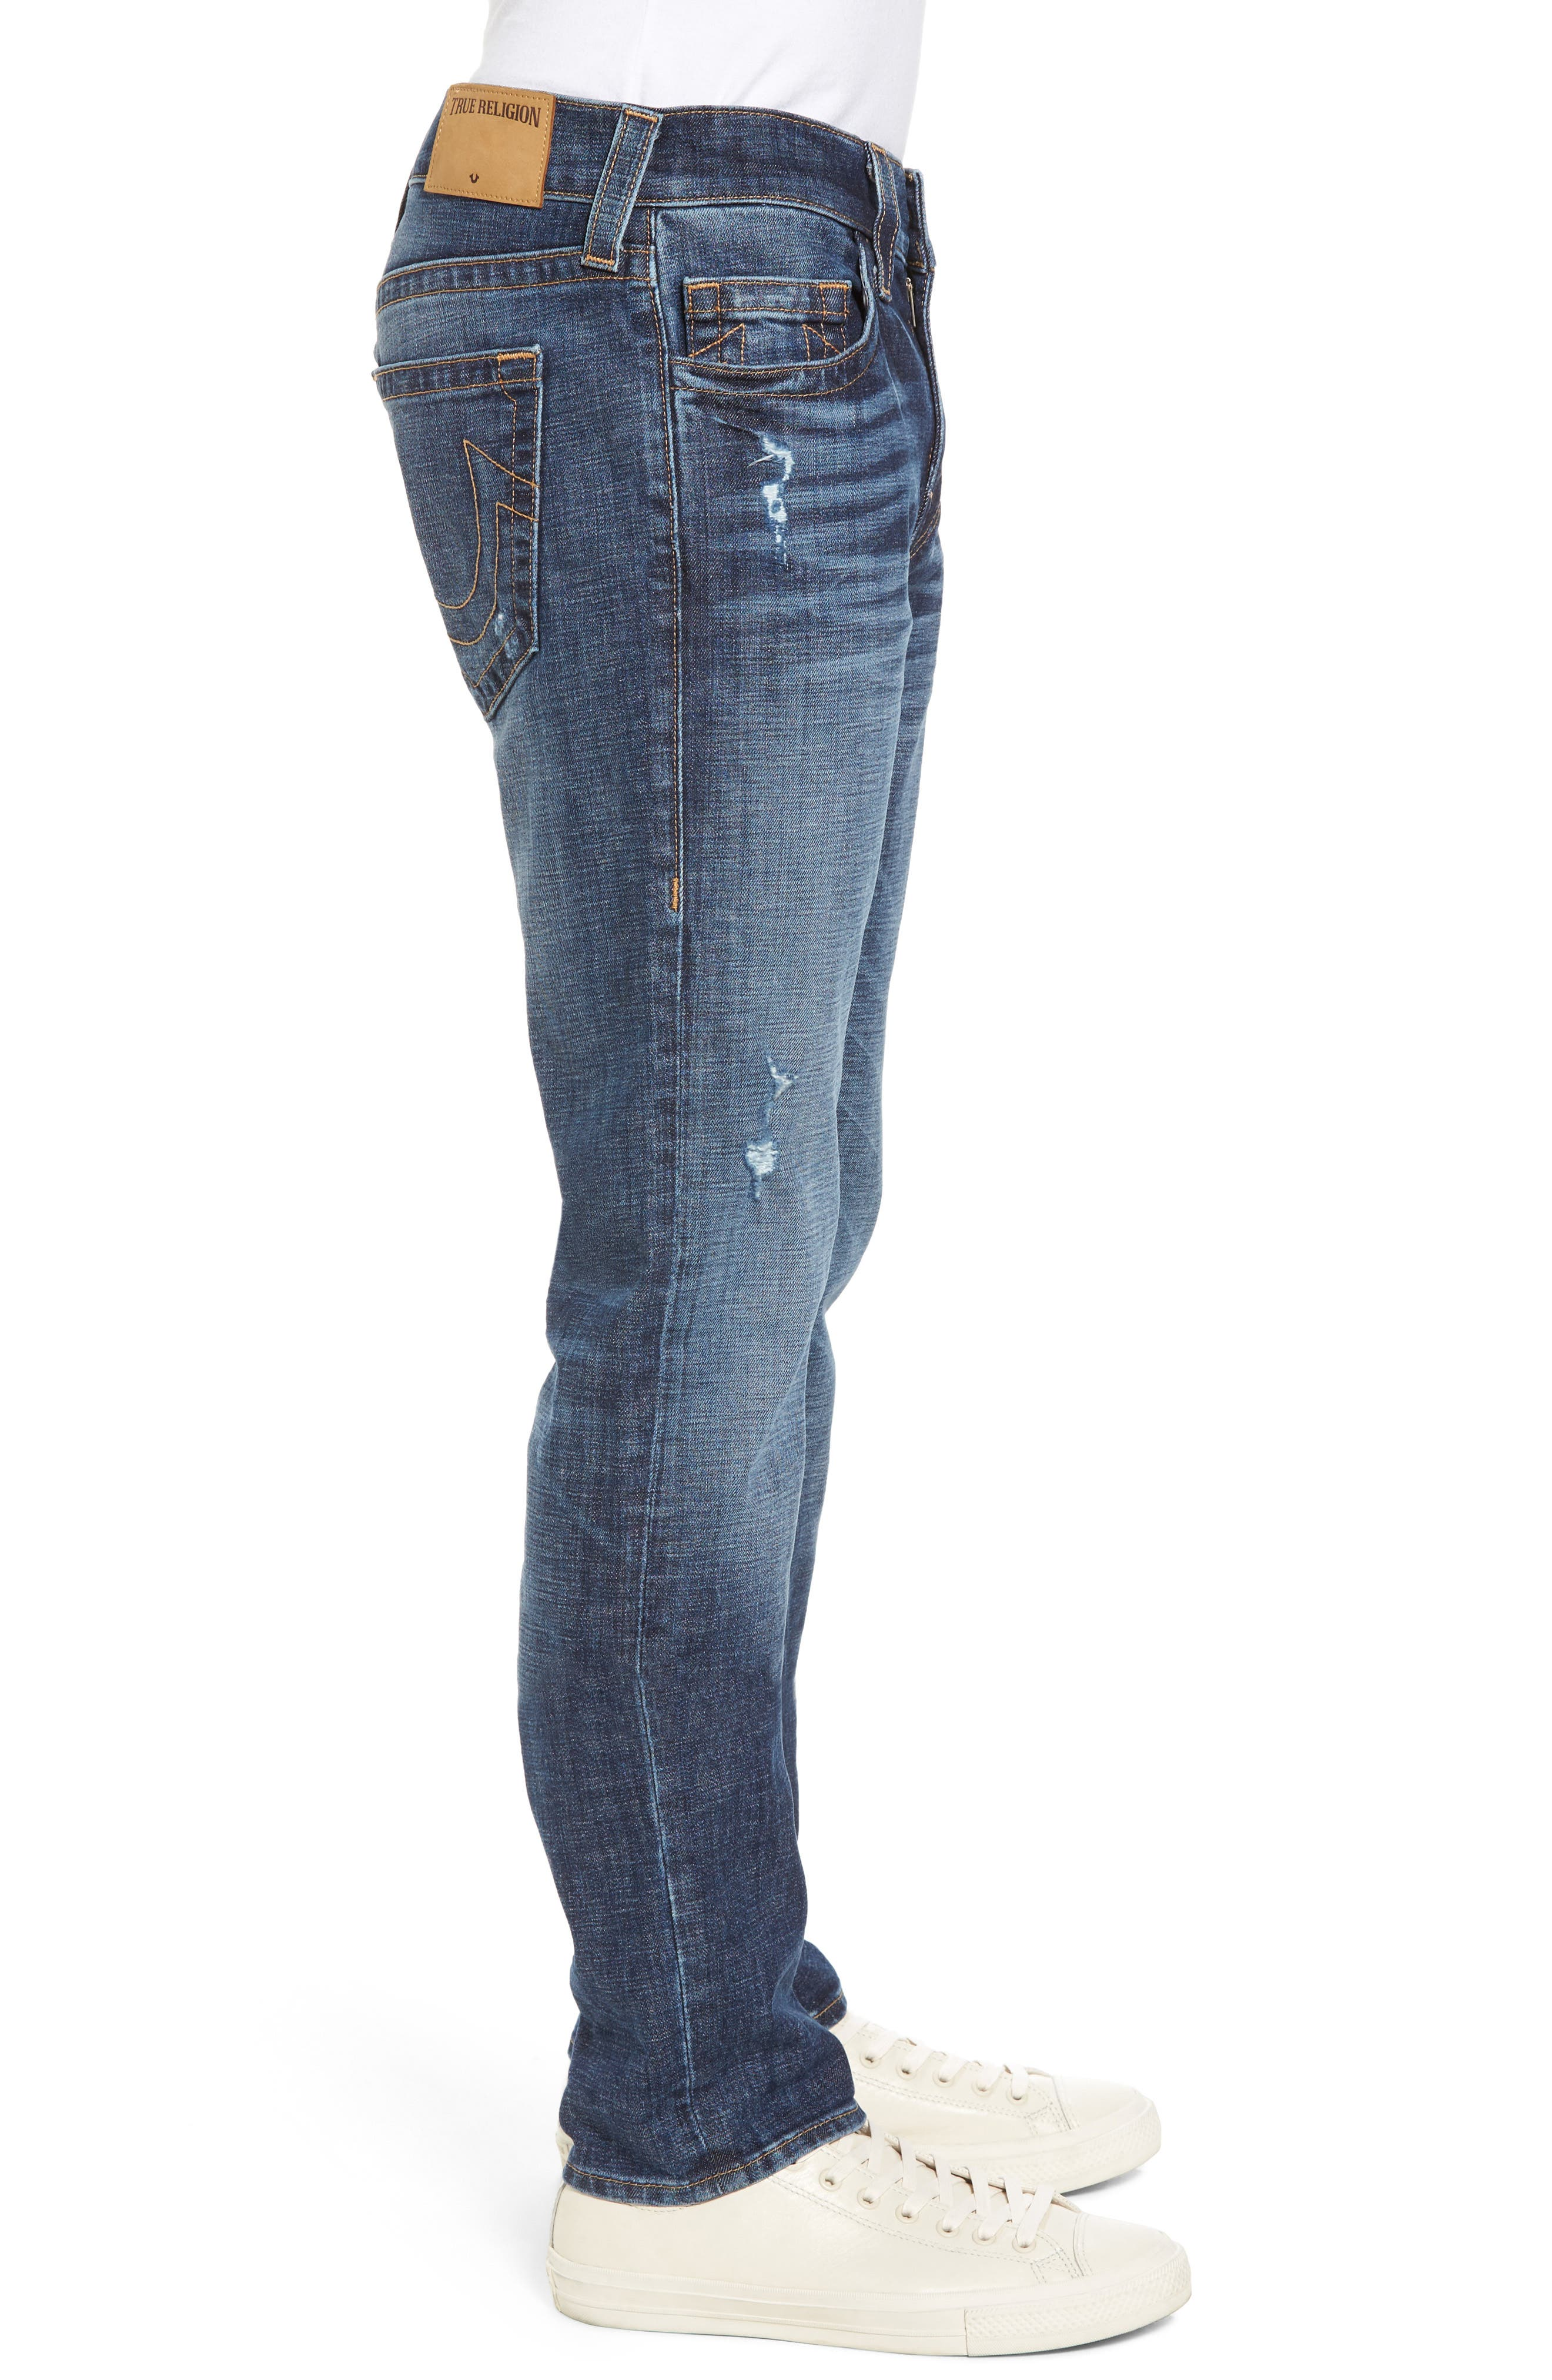 Rocco Skinny Fit Jeans,                             Alternate thumbnail 3, color,                             Dark Wash